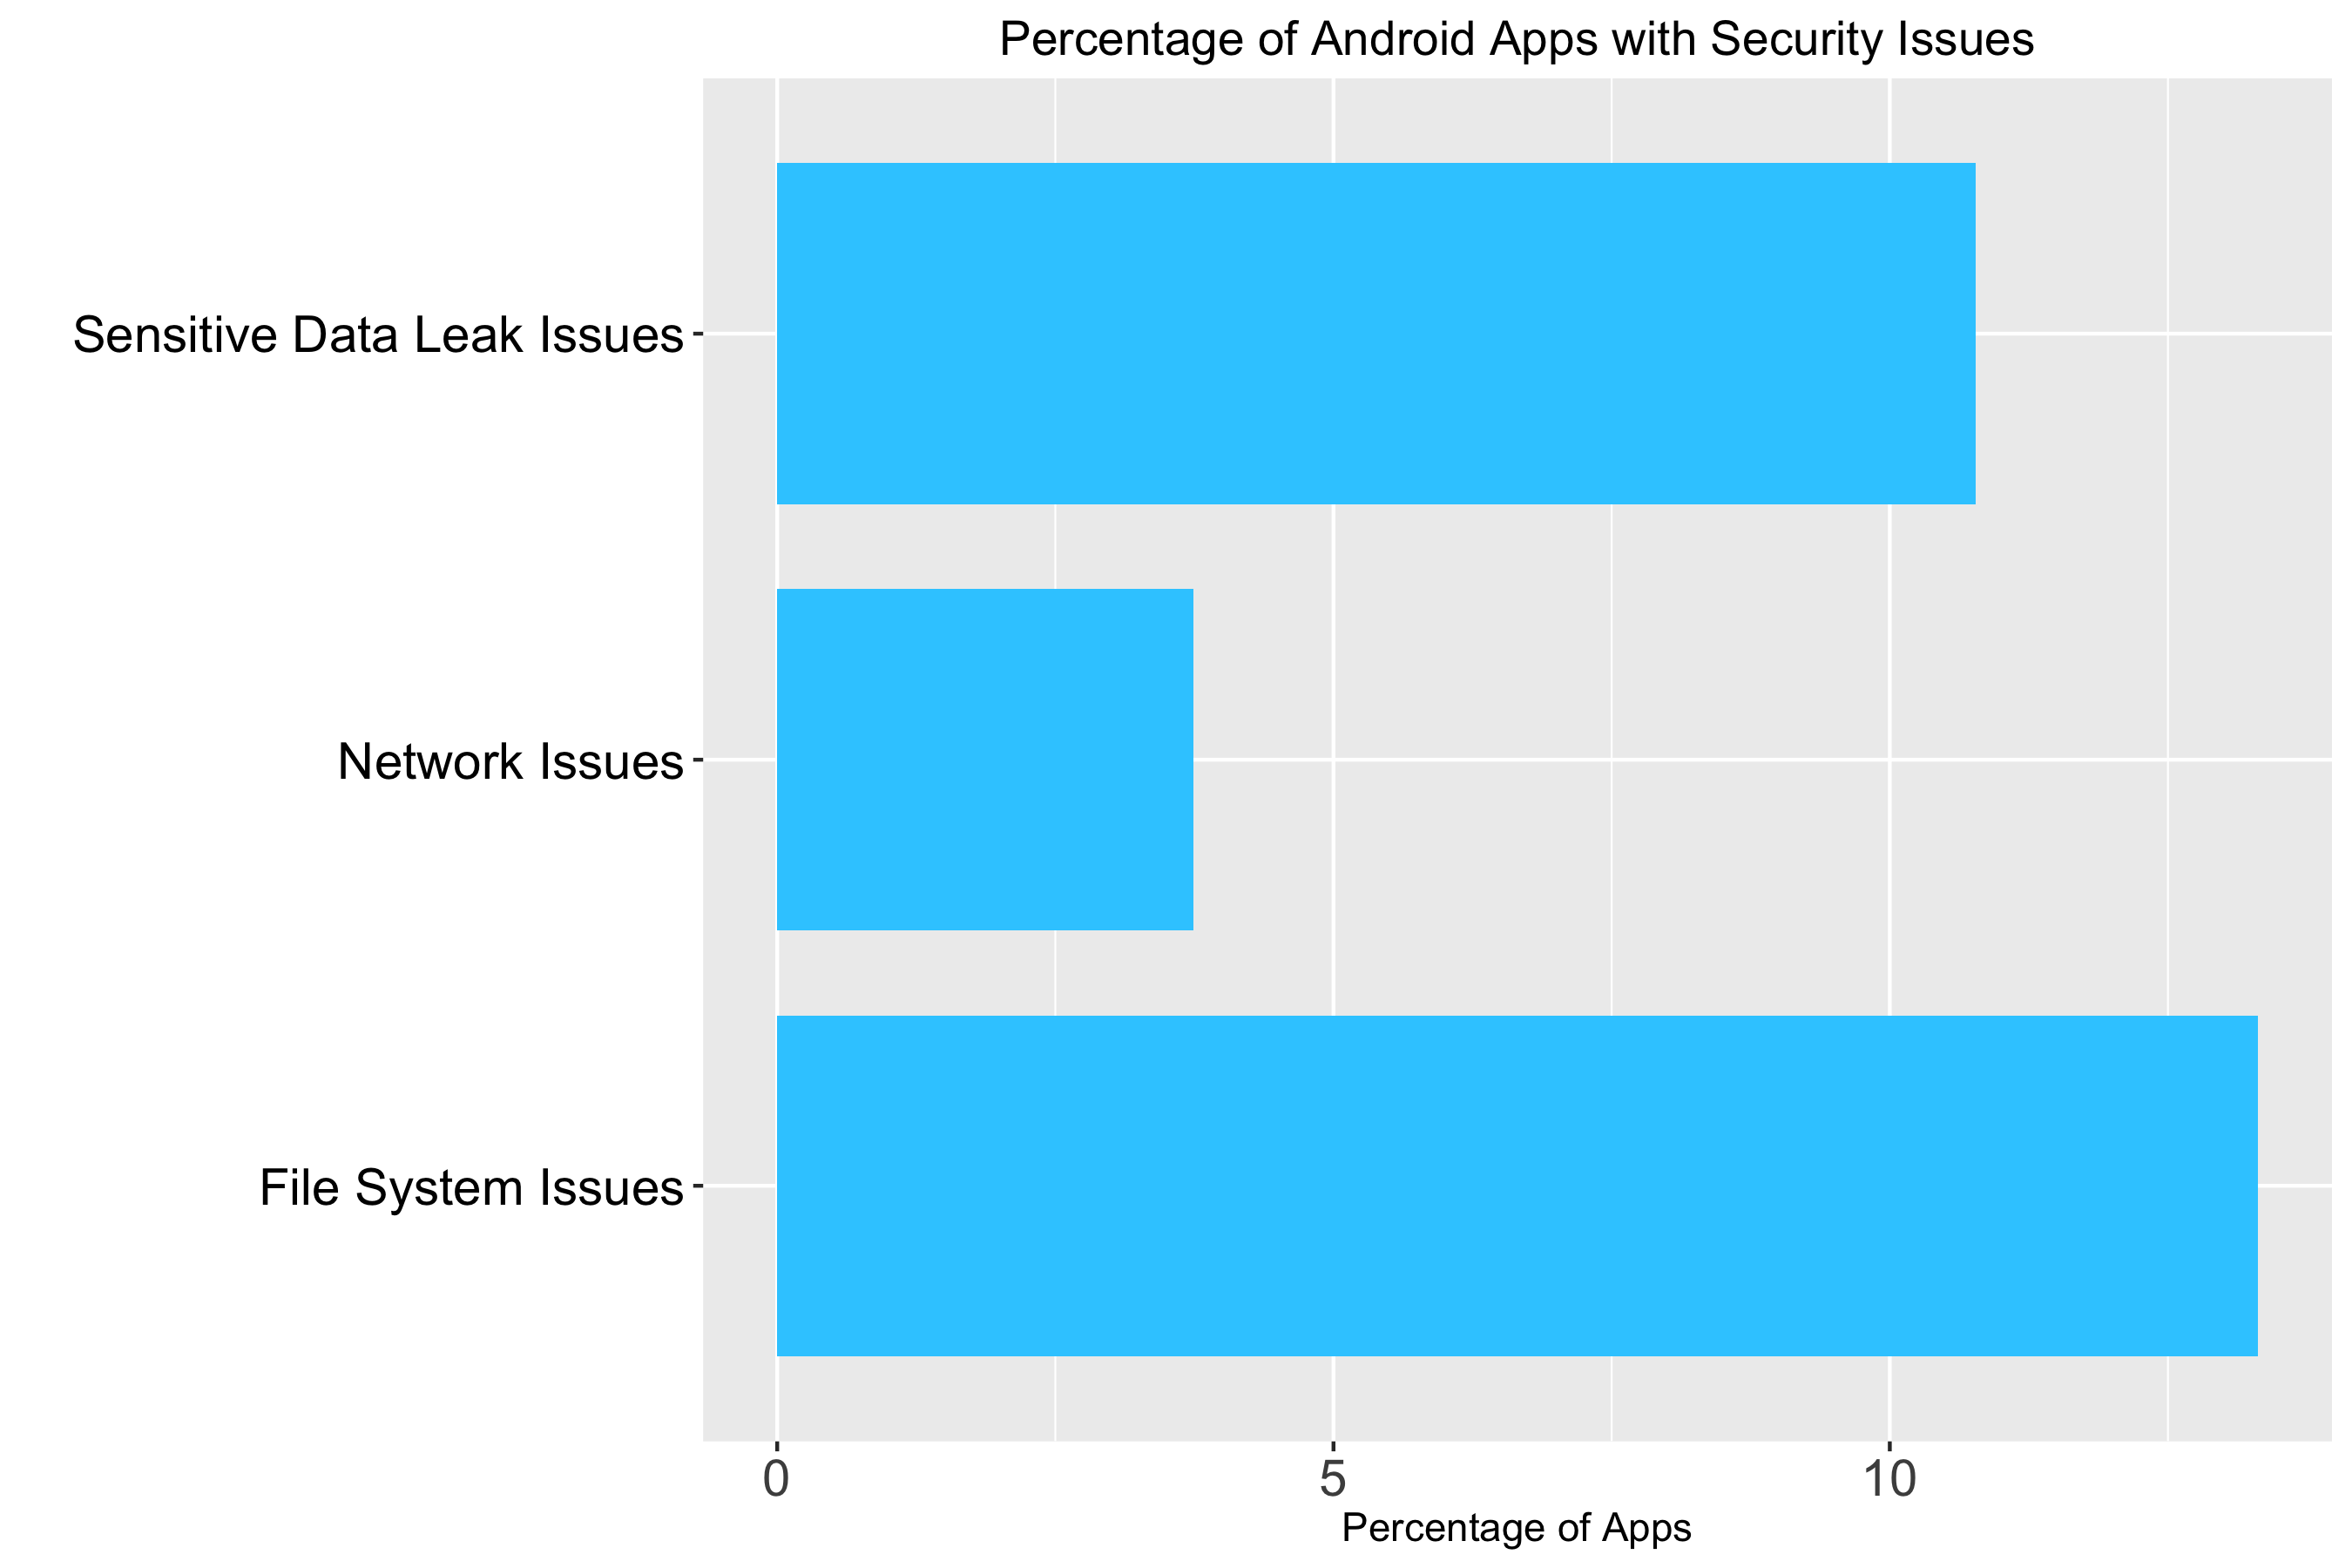 Percentage of Android apps with security issues